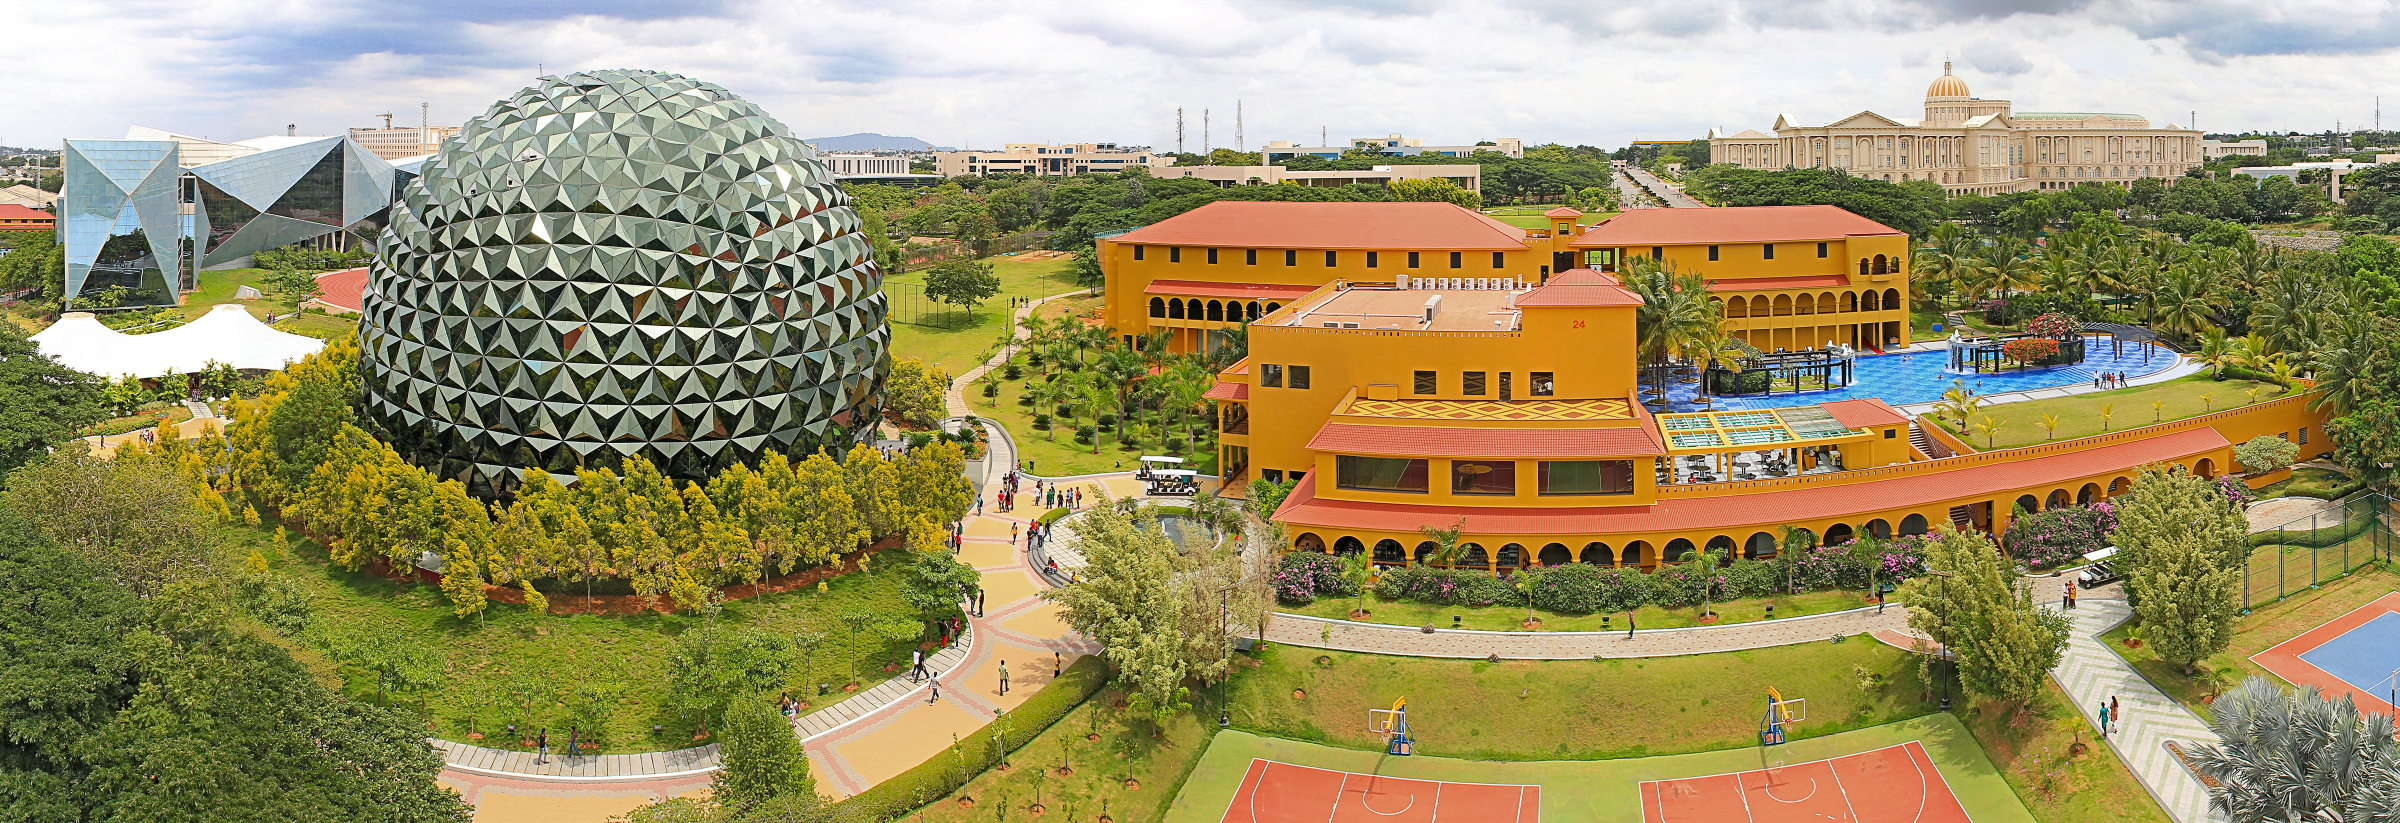 Enterprise Auto Finance >> SNEAK PEEK: This is how Infosys' Mysore campus looks from the inside | Business Insider India